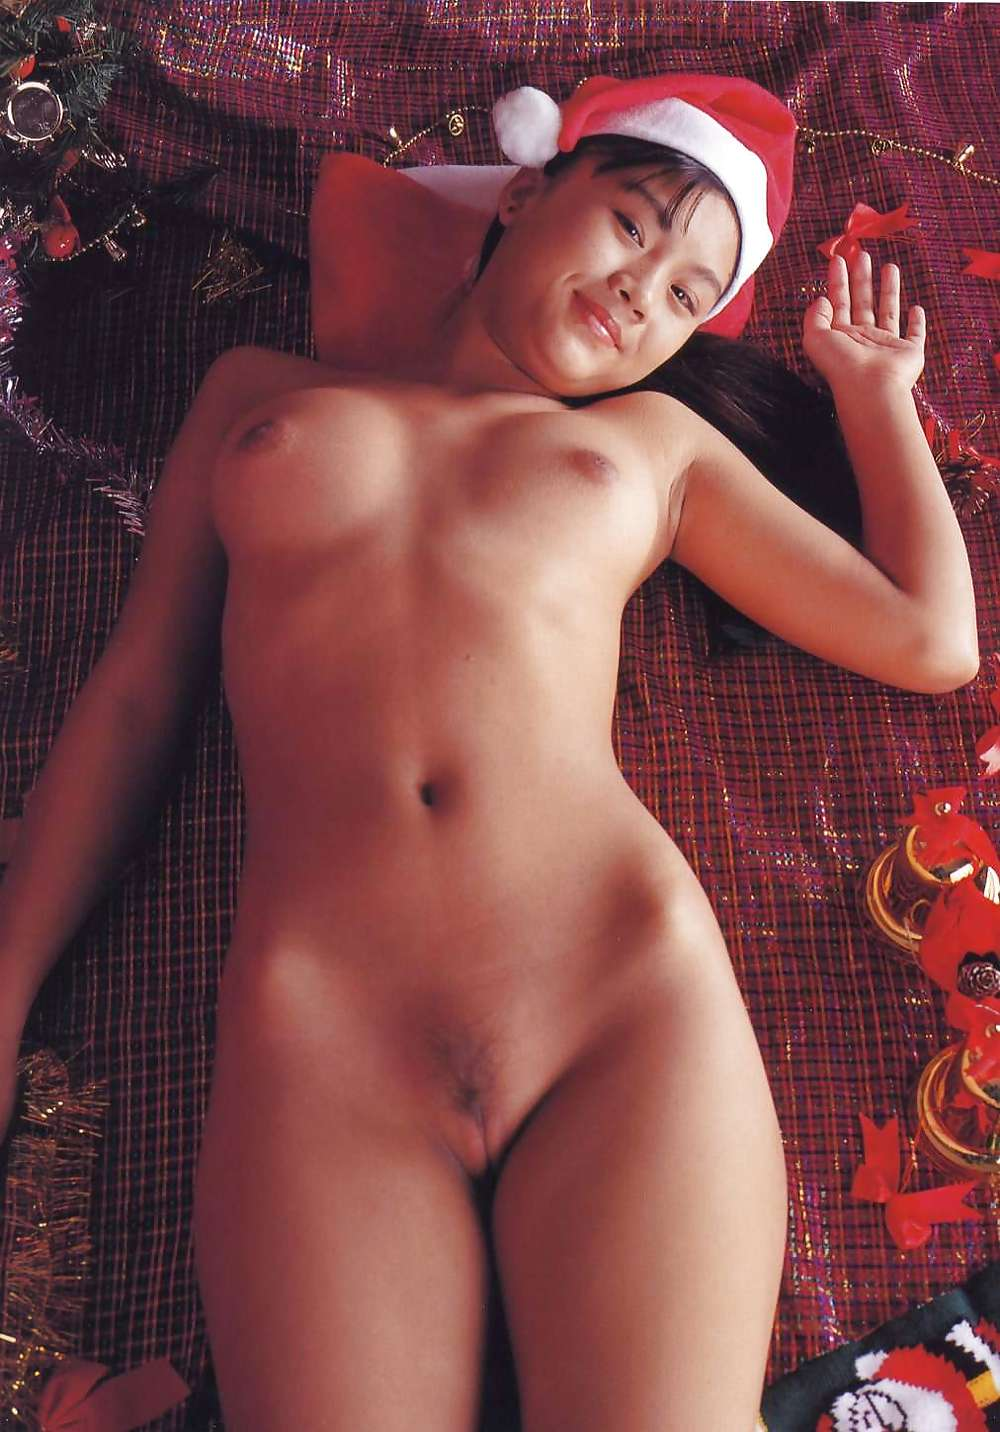 japanese junior nude gallery